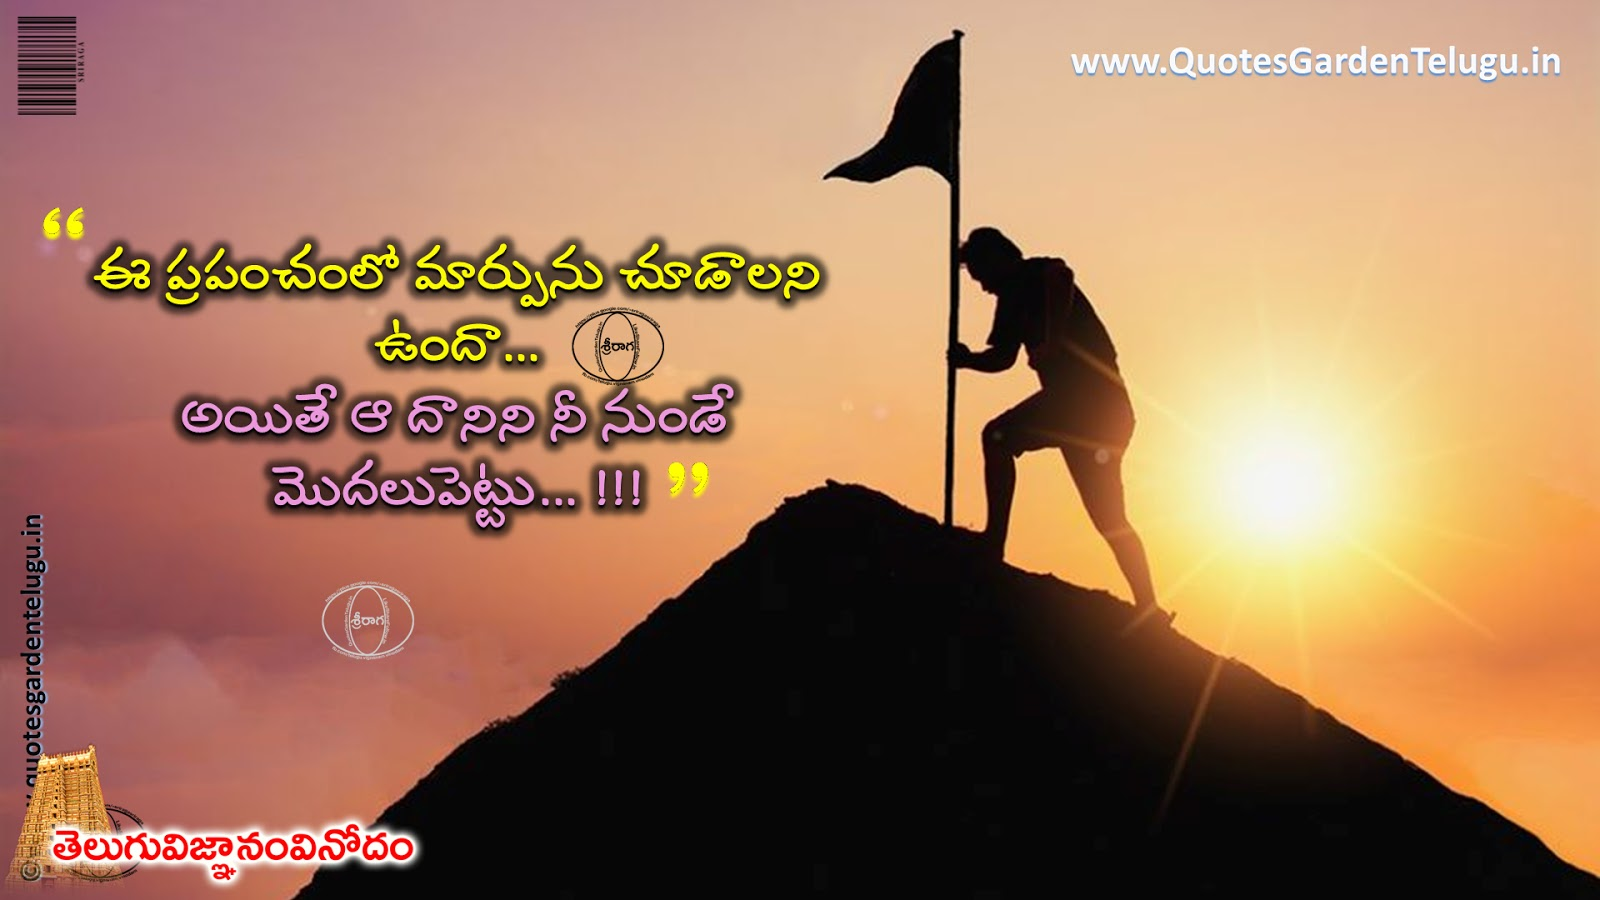 Best good night quotes latest in telugu for facebook friends whatsapp status